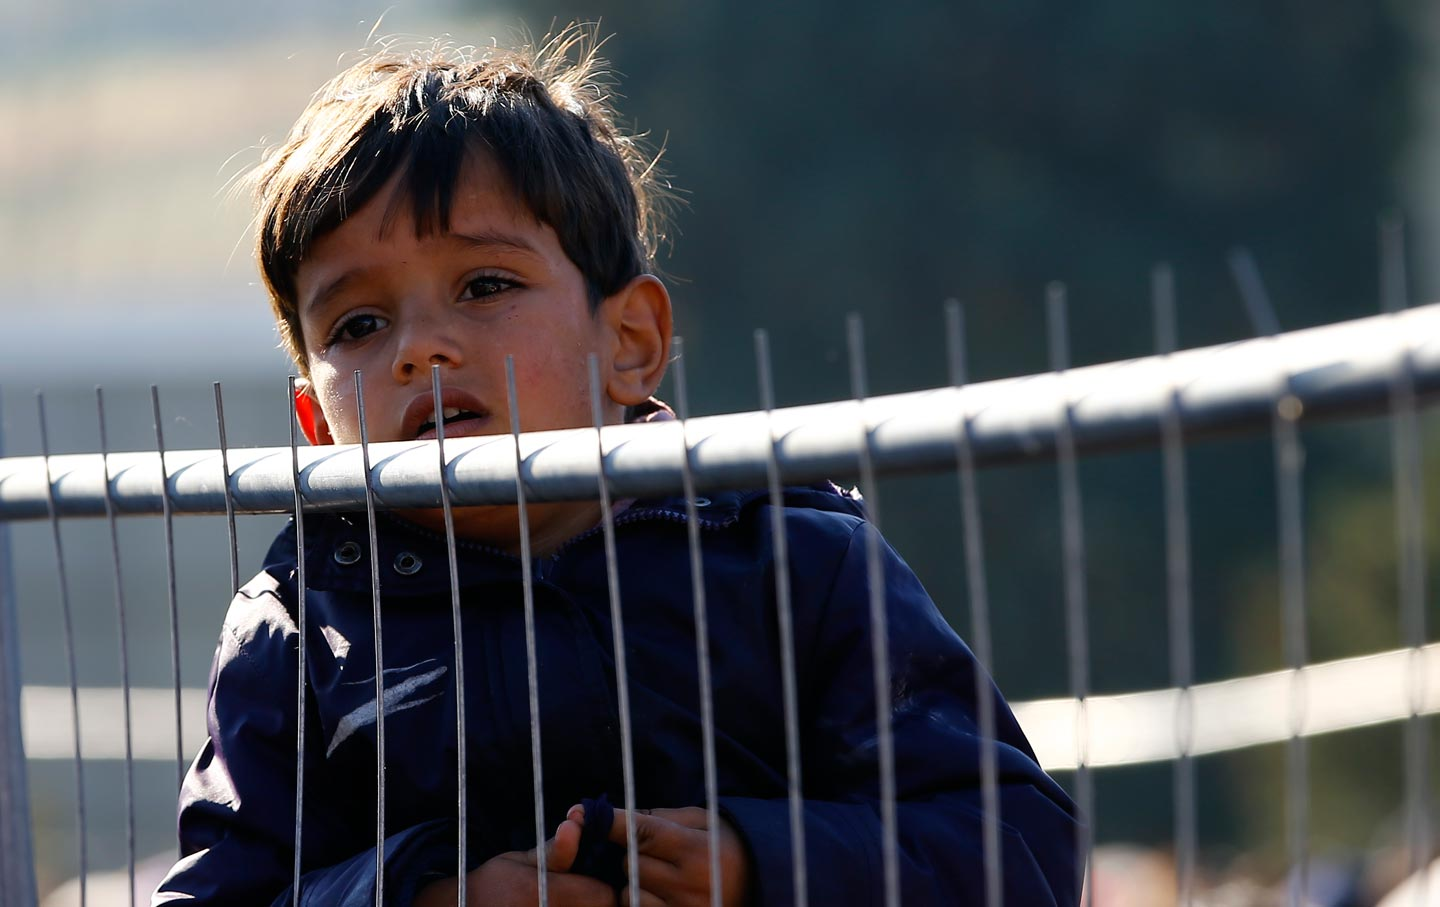 A migrant boy waits to cross the border from the village of Sentilj, Slovenia into Spielfeld in Austria, November 2, 2015.